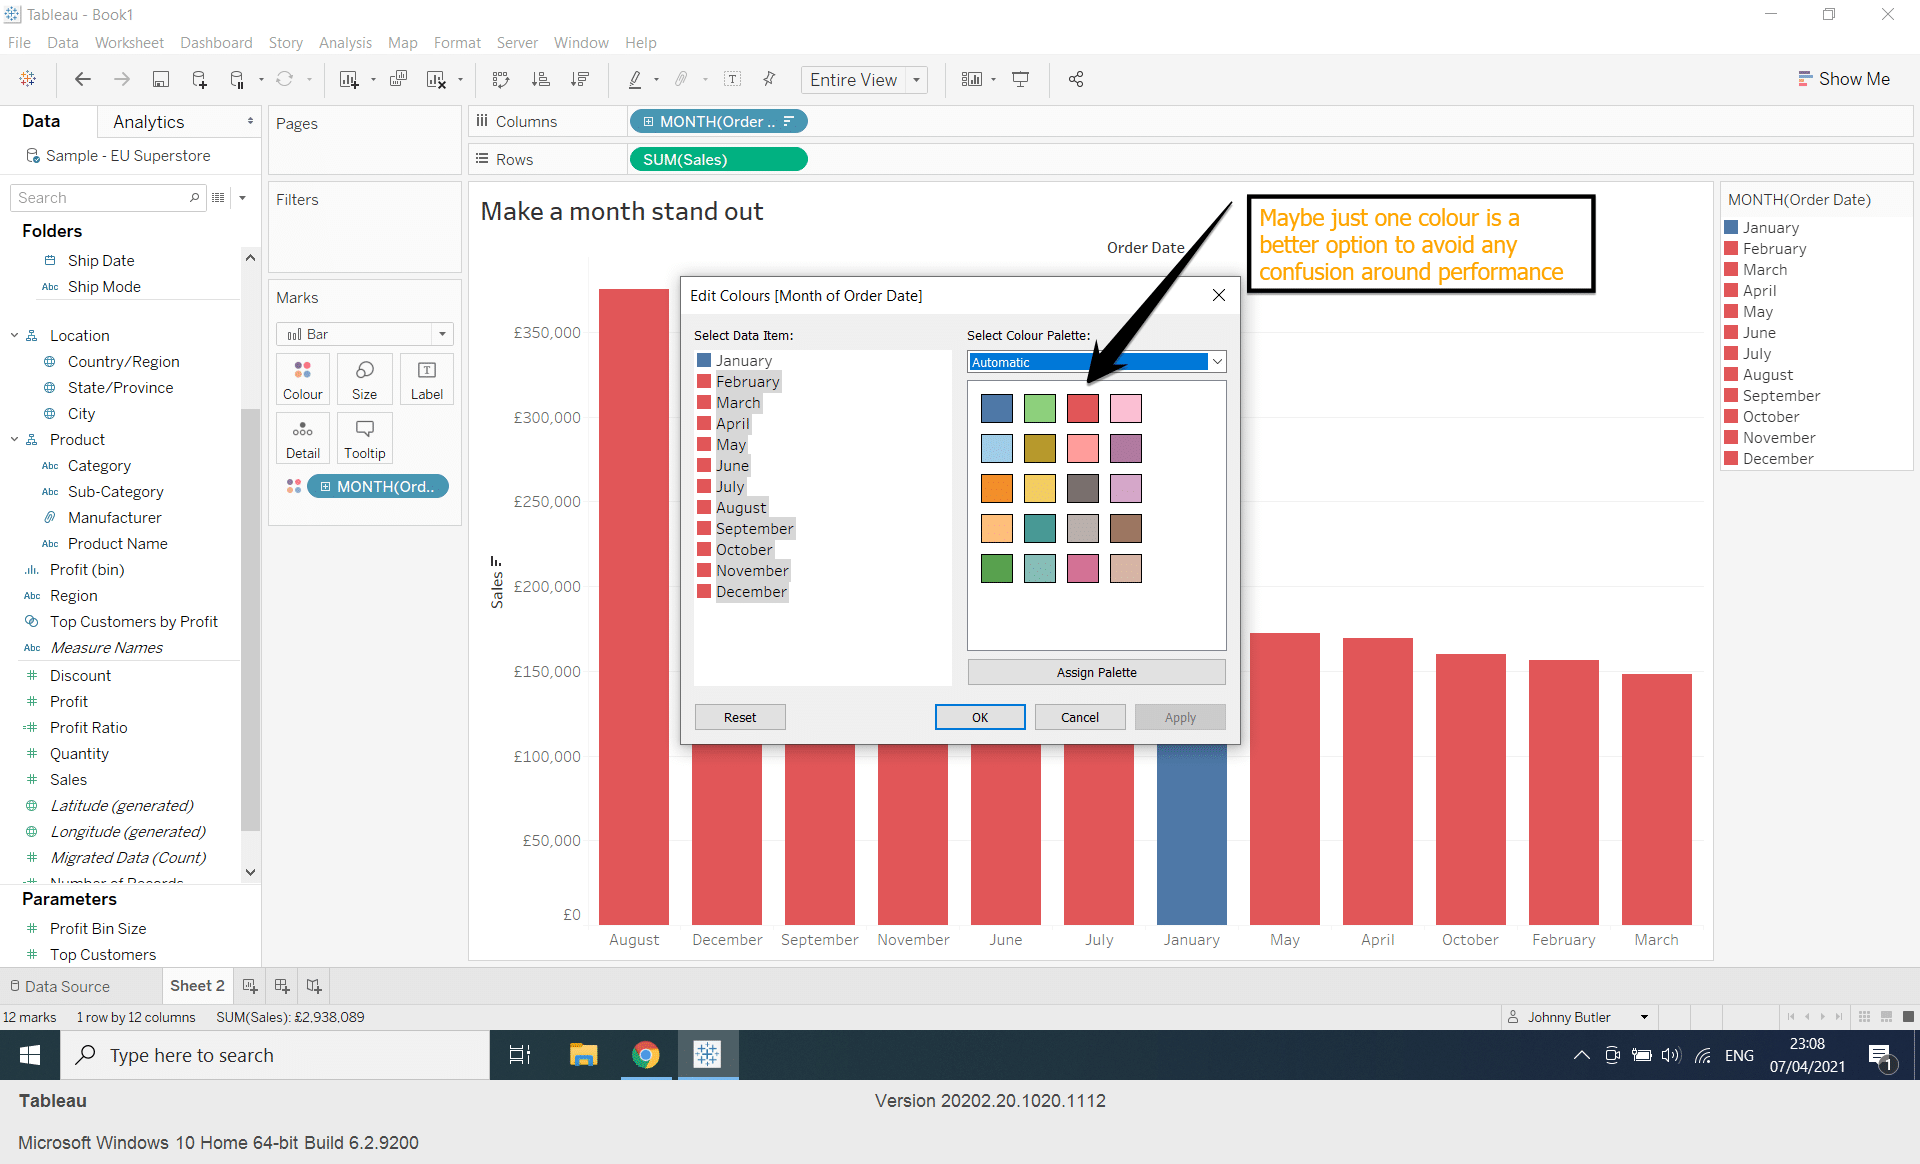 How can I change colour on individual bars in Tableau?